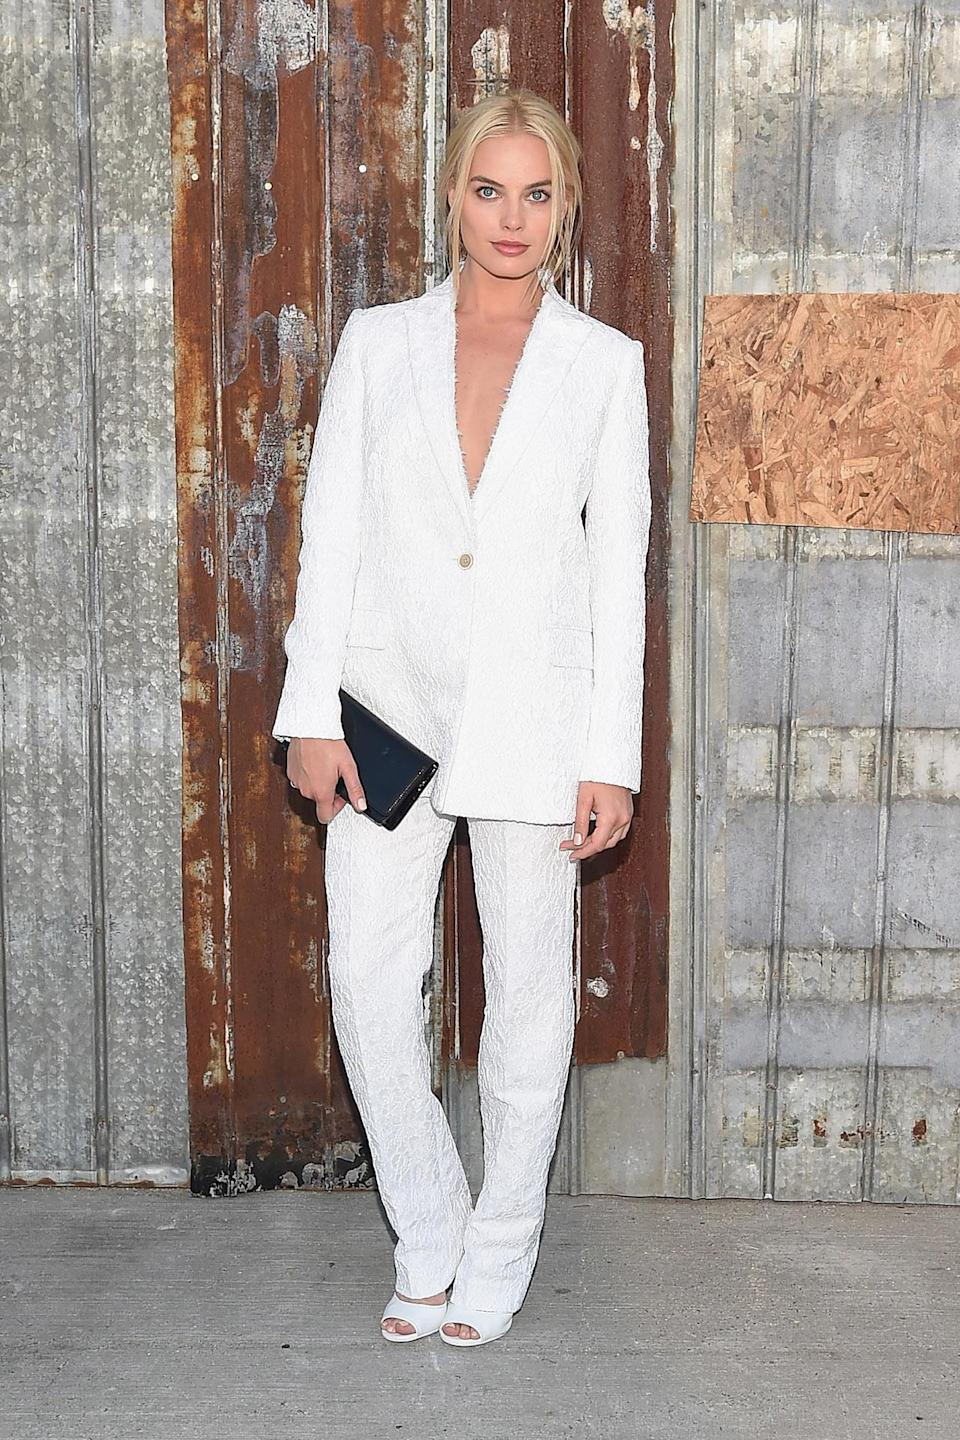 """<h2>In Givenchy</h2> <p>At the Givenchy NYFW show, 2015</p> <h4>Getty Images</h4> <p> <strong>Related Articles</strong> <ul> <li><a rel=""""nofollow noopener"""" href=""""http://thezoereport.com/fashion/style-tips/box-of-style-ways-to-wear-cape-trend/?utm_source=yahoo&utm_medium=syndication"""" target=""""_blank"""" data-ylk=""""slk:The Key Styling Piece Your Wardrobe Needs"""" class=""""link rapid-noclick-resp"""">The Key Styling Piece Your Wardrobe Needs</a></li><li><a rel=""""nofollow noopener"""" href=""""http://thezoereport.com/fashion/shopping/everything-need-let-zoe-giveaway/?utm_source=yahoo&utm_medium=syndication"""" target=""""_blank"""" data-ylk=""""slk:Everything You Need From Our Let It Zoe Giveaway"""" class=""""link rapid-noclick-resp"""">Everything You Need From Our Let It Zoe Giveaway</a></li><li><a rel=""""nofollow noopener"""" href=""""http://thezoereport.com/beauty/celebrity-beauty/josephine-skriver-makeup-tutorial-video-vogue/?utm_source=yahoo&utm_medium=syndication"""" target=""""_blank"""" data-ylk=""""slk:A Victoria's Secret Model Shows Us How To Get Our Lips To Her Level"""" class=""""link rapid-noclick-resp"""">A Victoria's Secret Model Shows Us How To Get Our Lips To Her Level</a></li> </ul> </p>"""